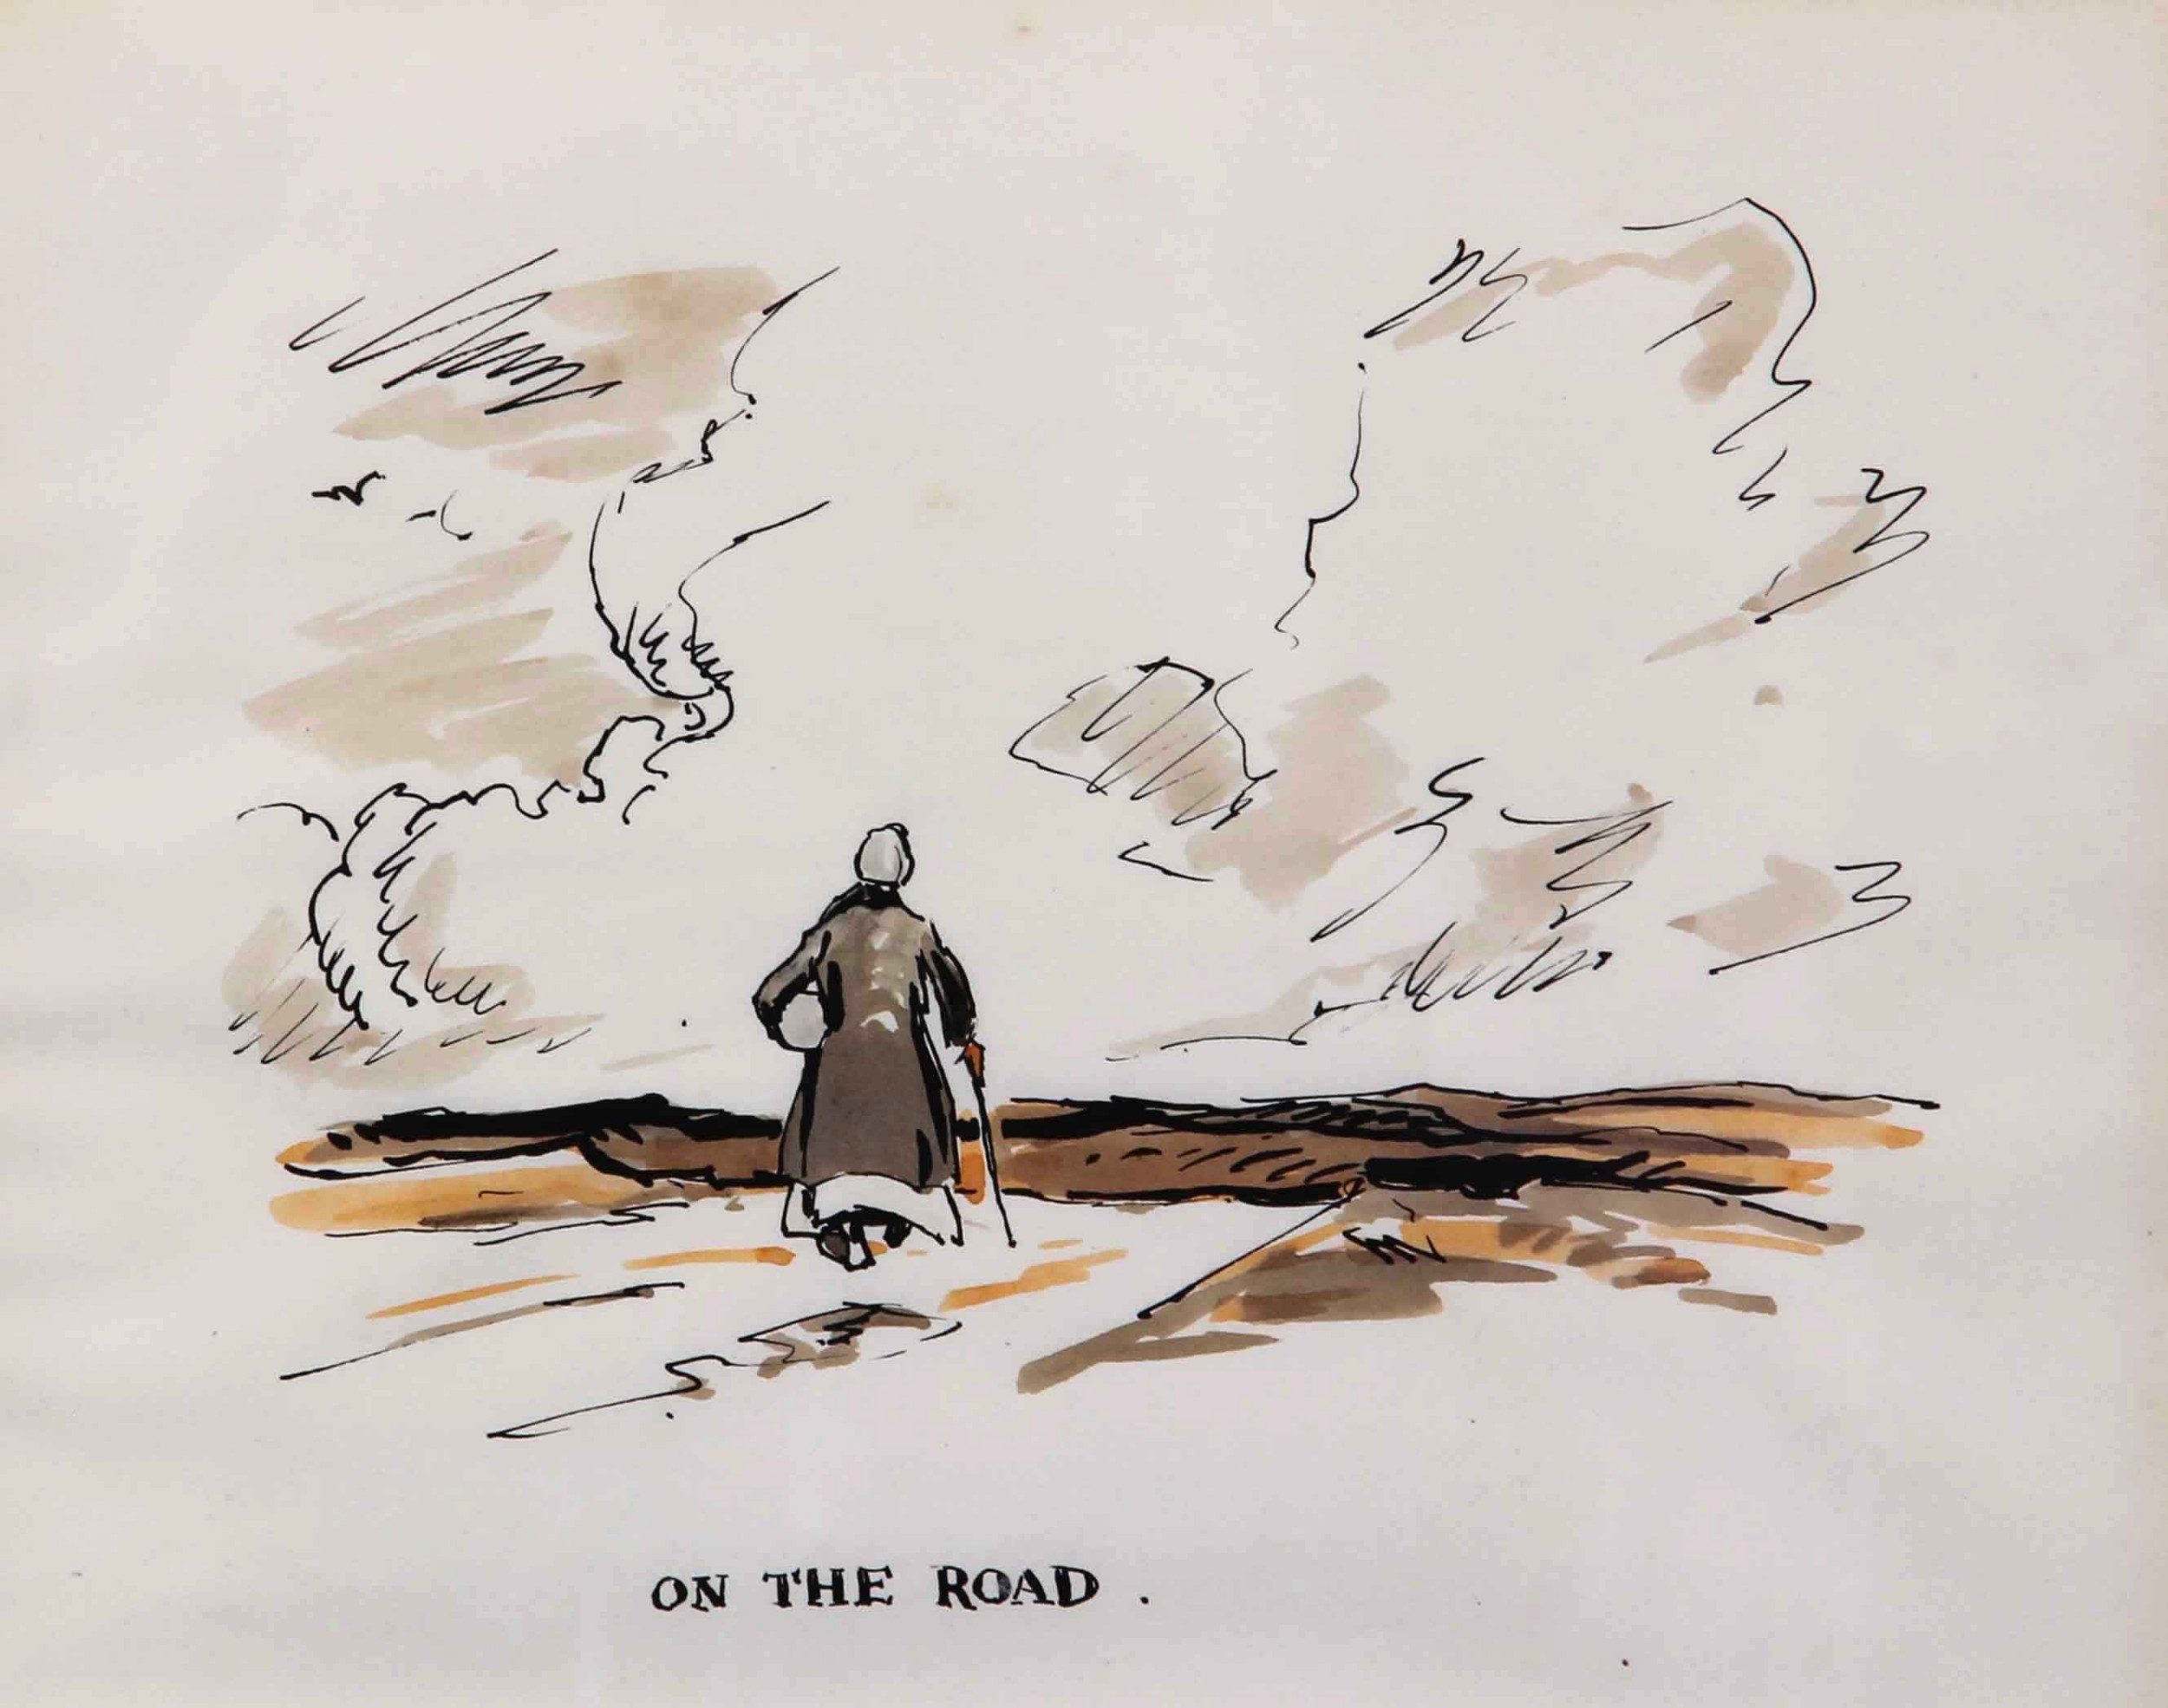 fred lawson on the road watercolour landscape drawing